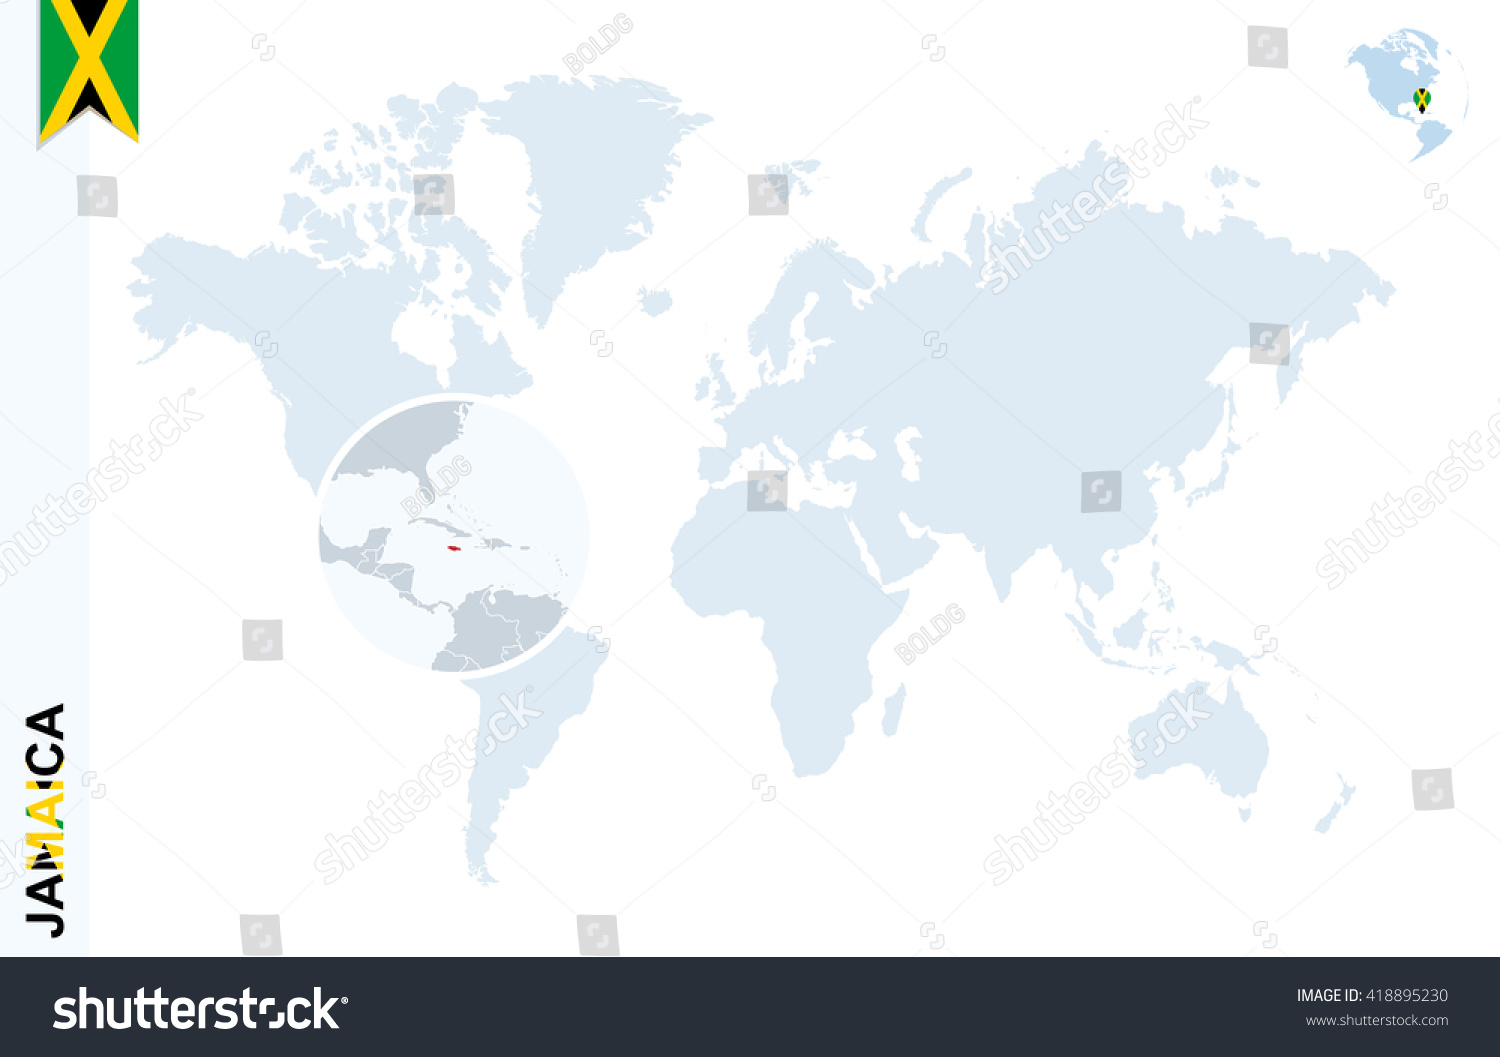 World map magnifying on jamaica blue stock vector 418895230 world map with magnifying on jamaica blue earth globe with jamaica flag pin zoom gumiabroncs Image collections